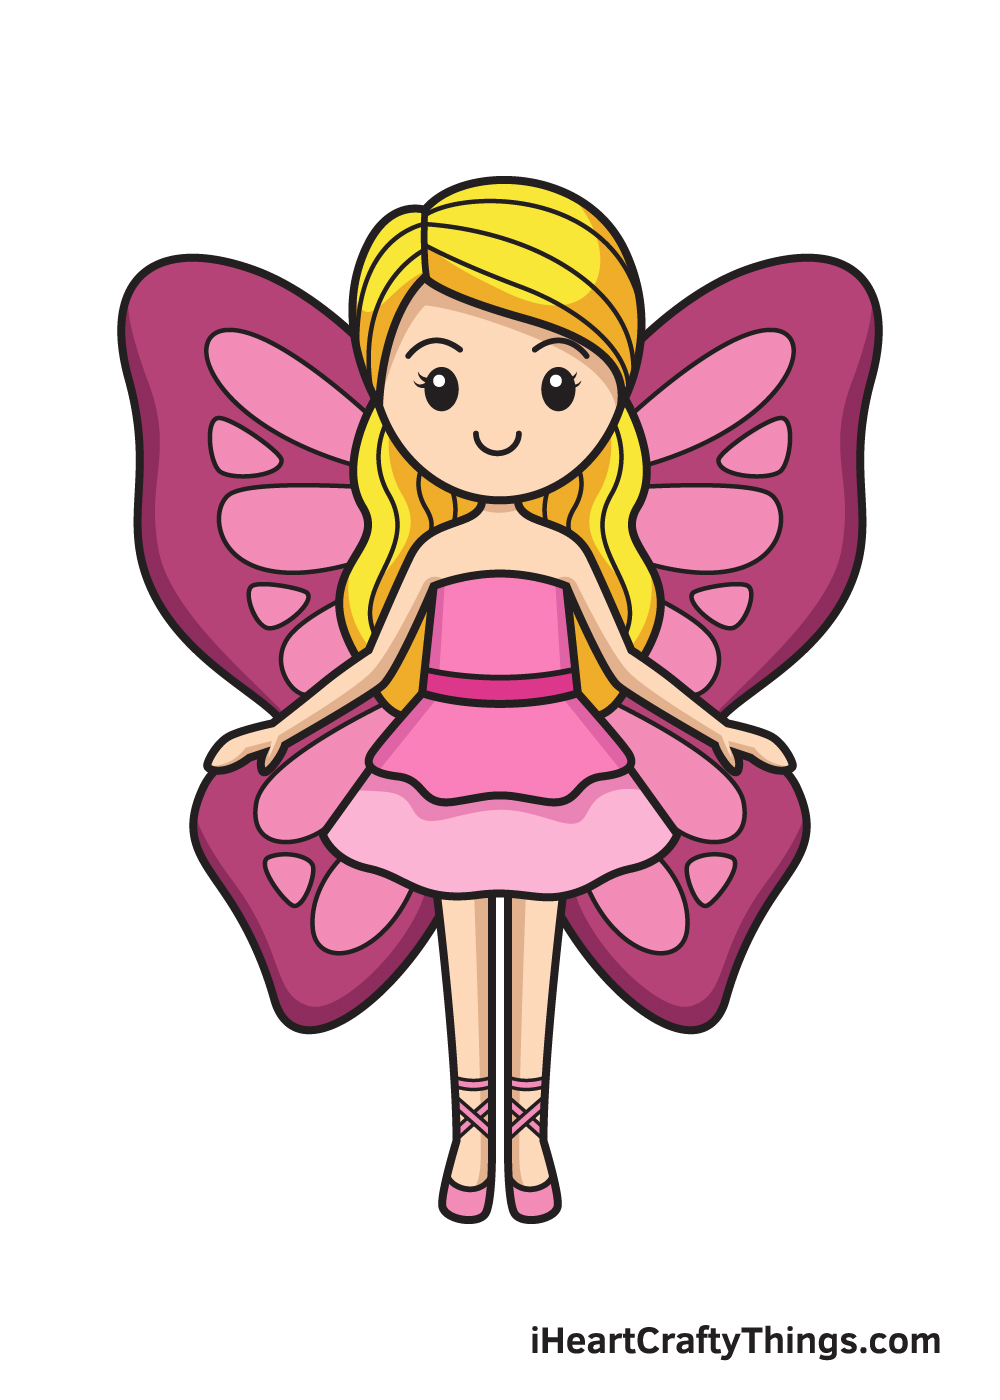 Fairy Drawing – 9 Steps